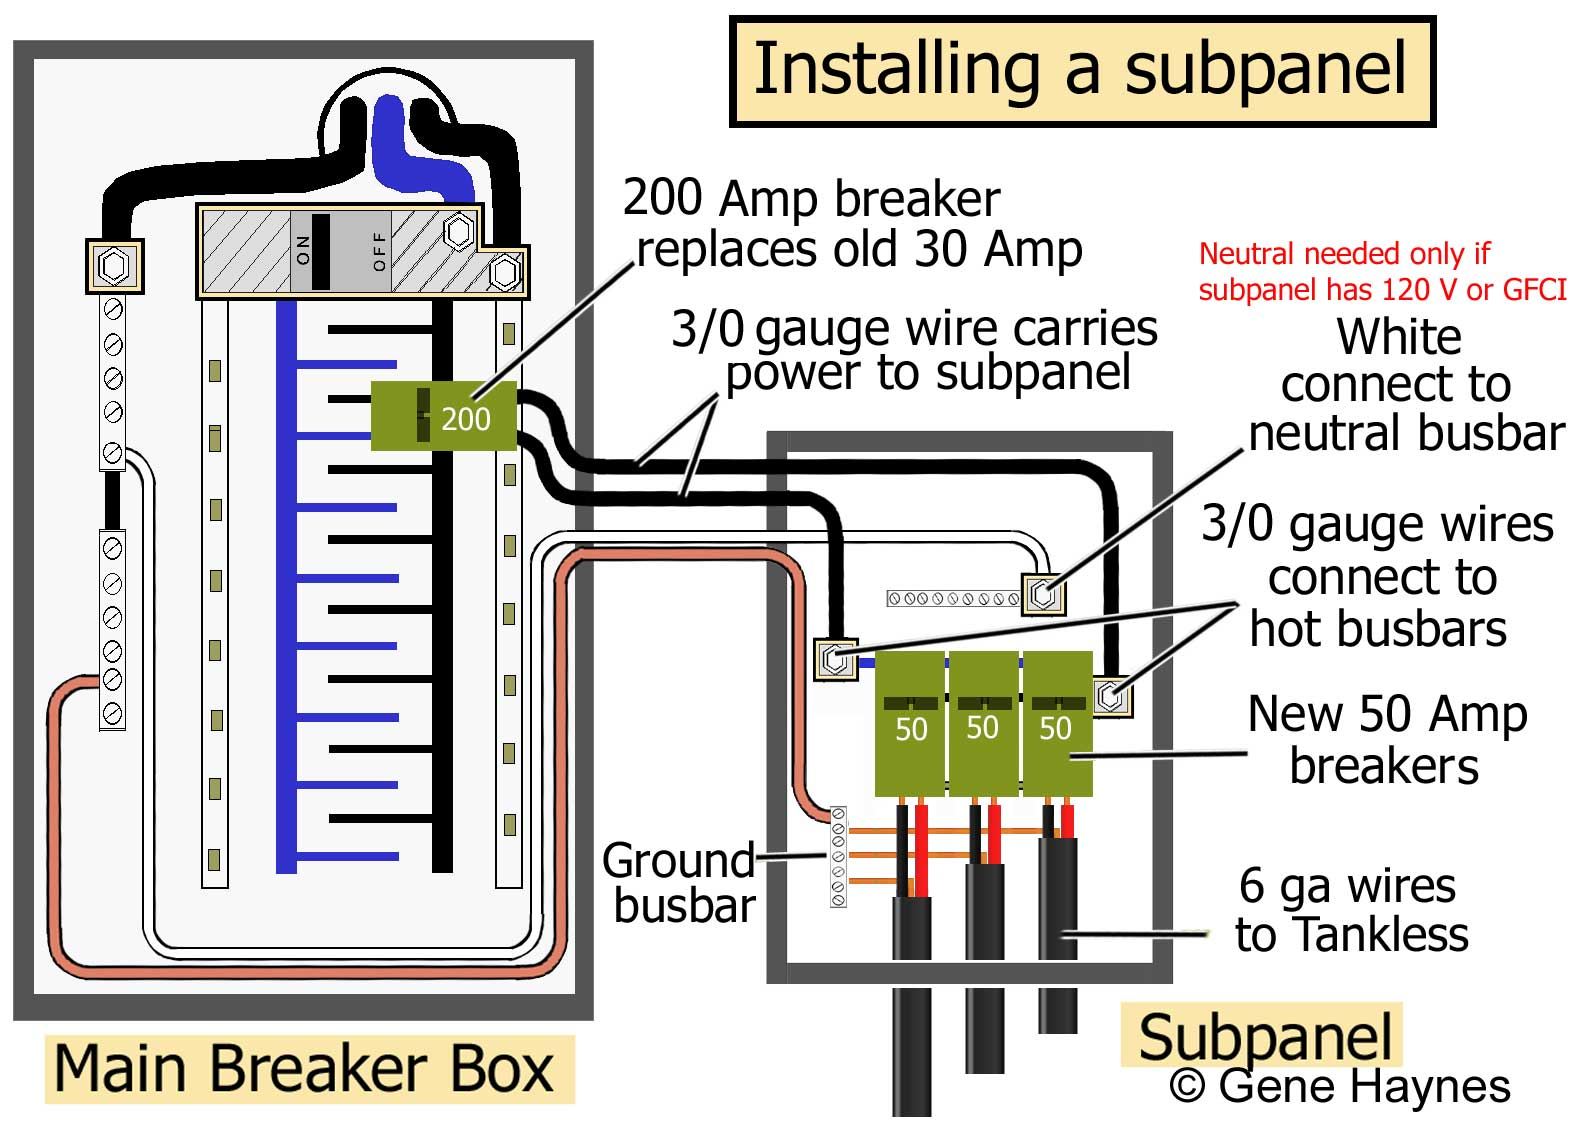 Main subpanel Tankless 600 how to install a subpanel how to install main lug 240 volt gfci breaker wiring diagram at aneh.co